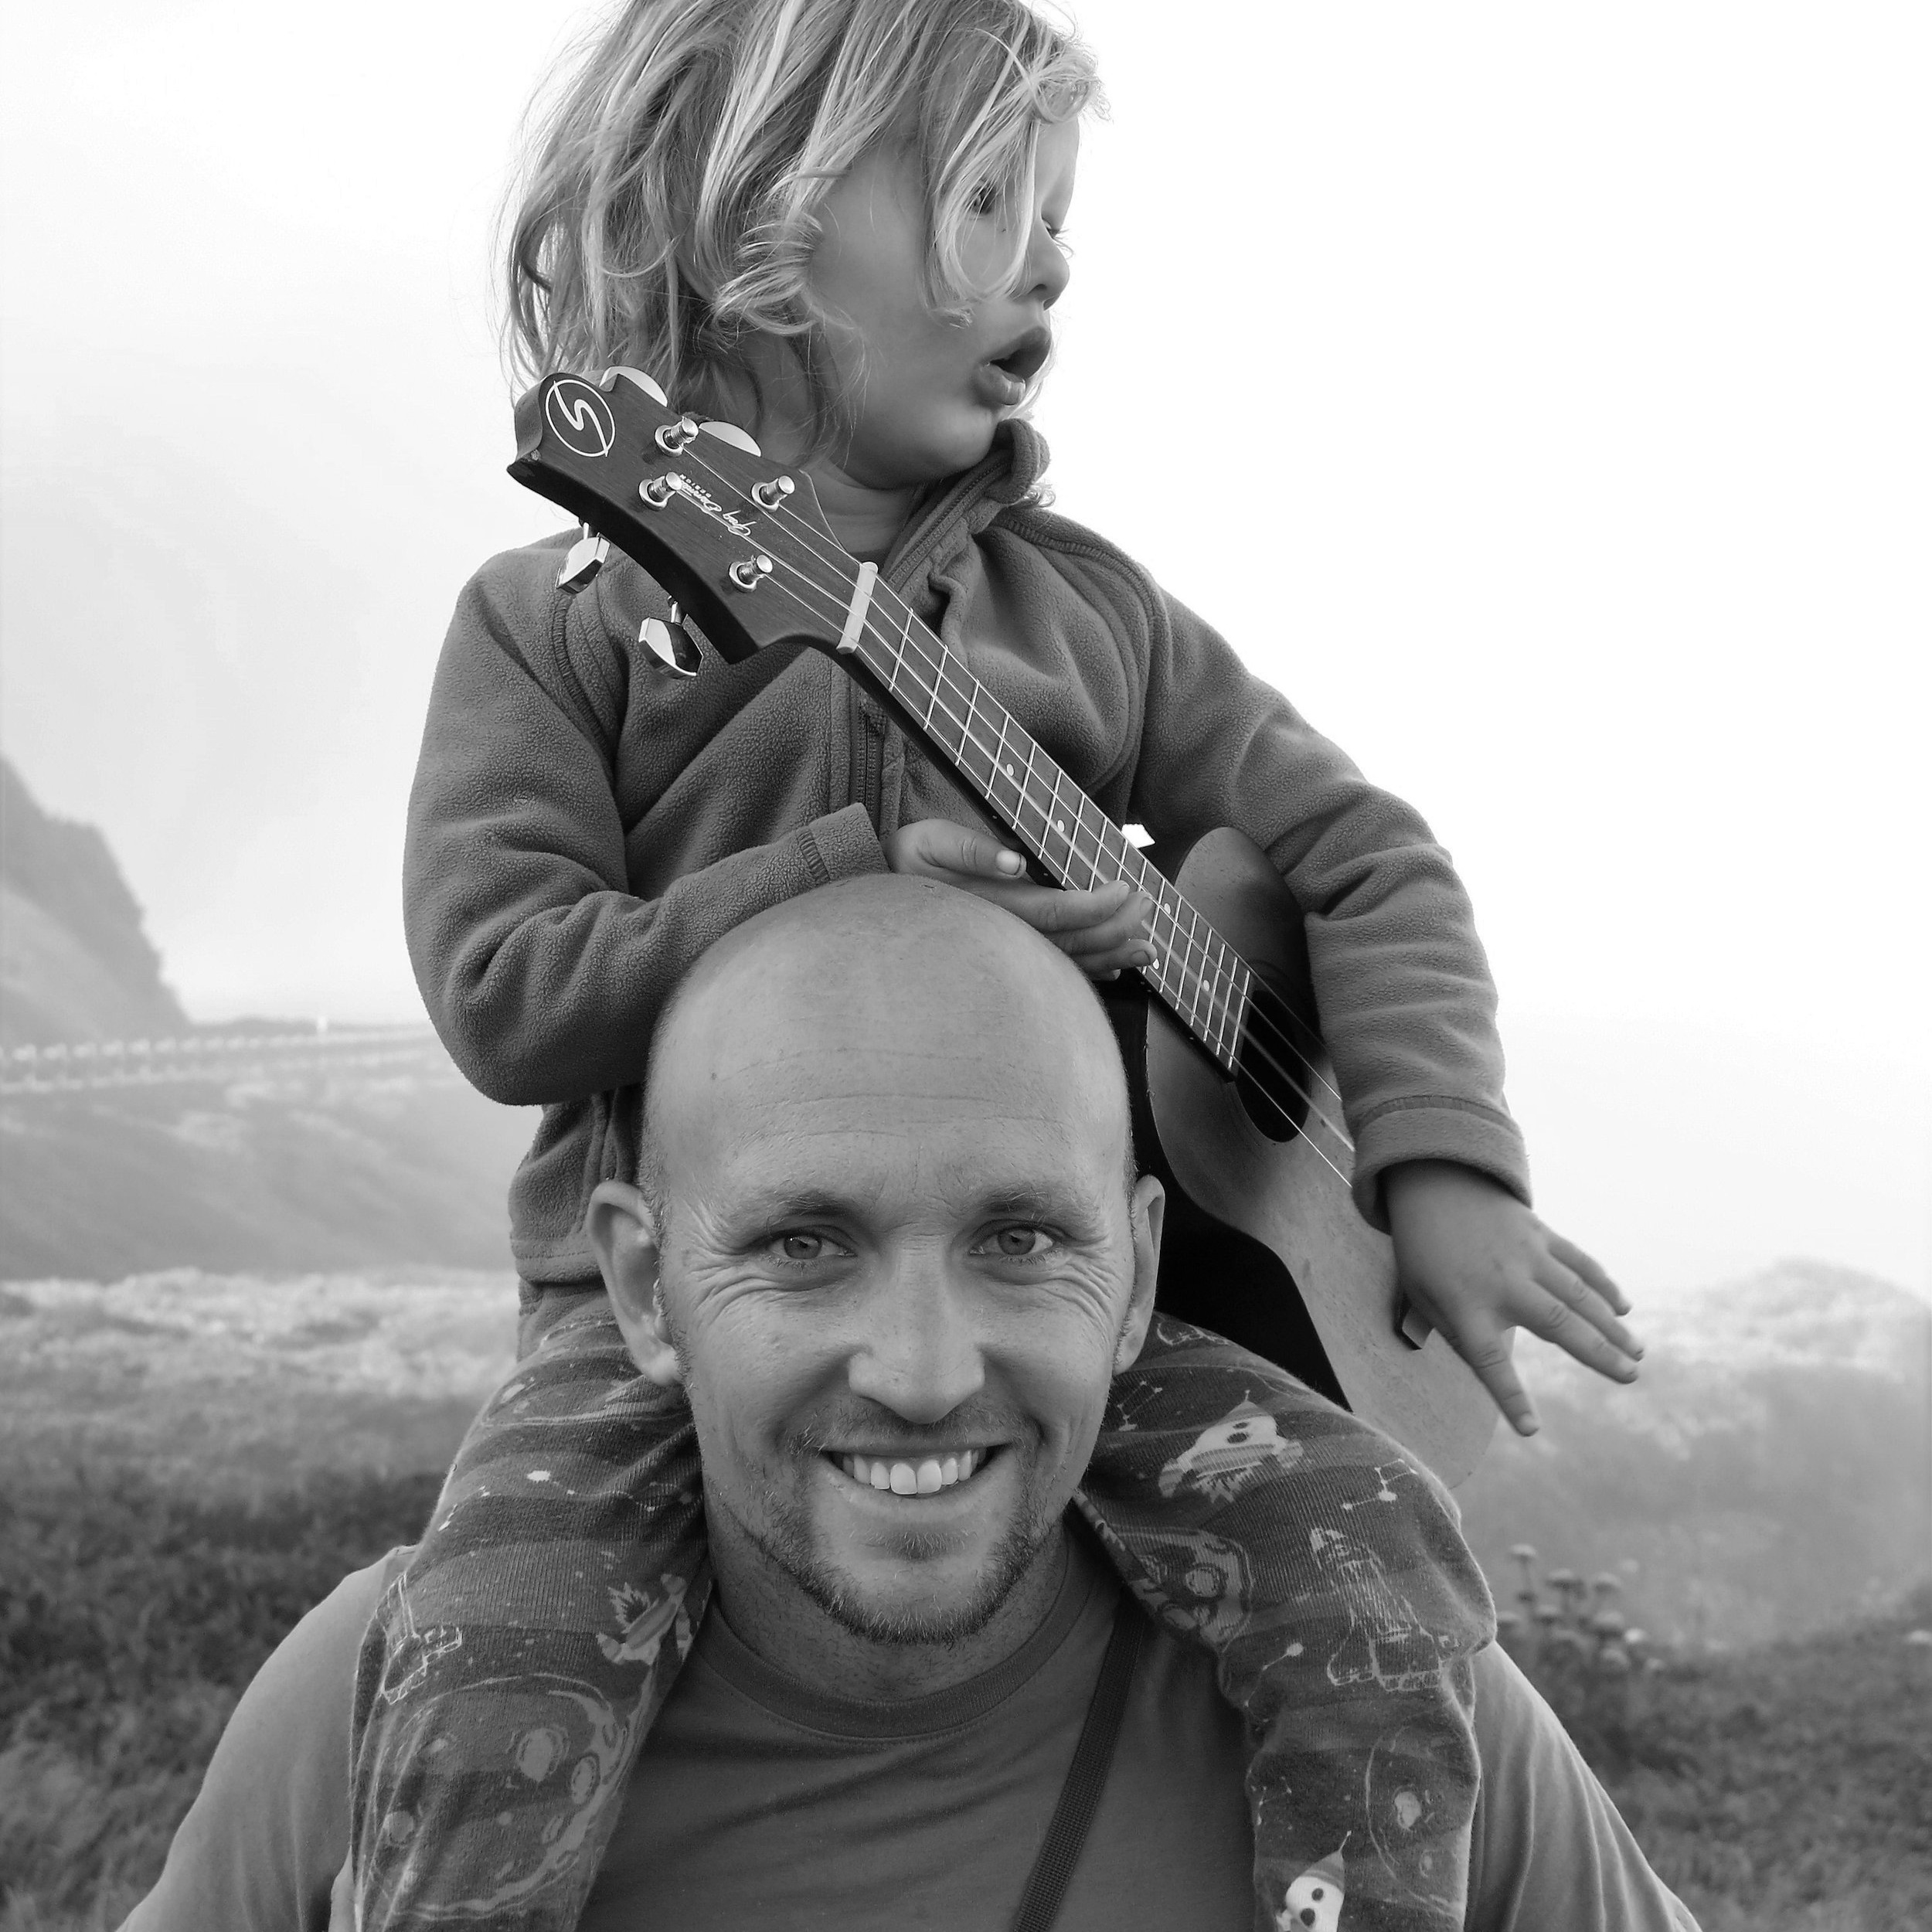 """Brent Swartz,  Public Health Nurse & Father of two.  """"I am a Public Health Nurse with King County working with homeless children and their families. In working with at risk children I have learned that strong parenting skills can insulate children from significant trauma and allows parents to find joy and self confidence in any situation.  I am most fascinated with infancy and early childhood, developing skills and training in infant mental health and positive discipline as the cornerstones of understanding how early childhood experiences shape people through the course of their lifetime. When not visiting families at shelters, encampments, or on the streets, my wife Annelisa, my 4 year old son Finnley, and my 2 year old daughter Hazel and I can be found hiking and camping in the mountains, or sailing in the San Juans on our small family sail boat."""""""